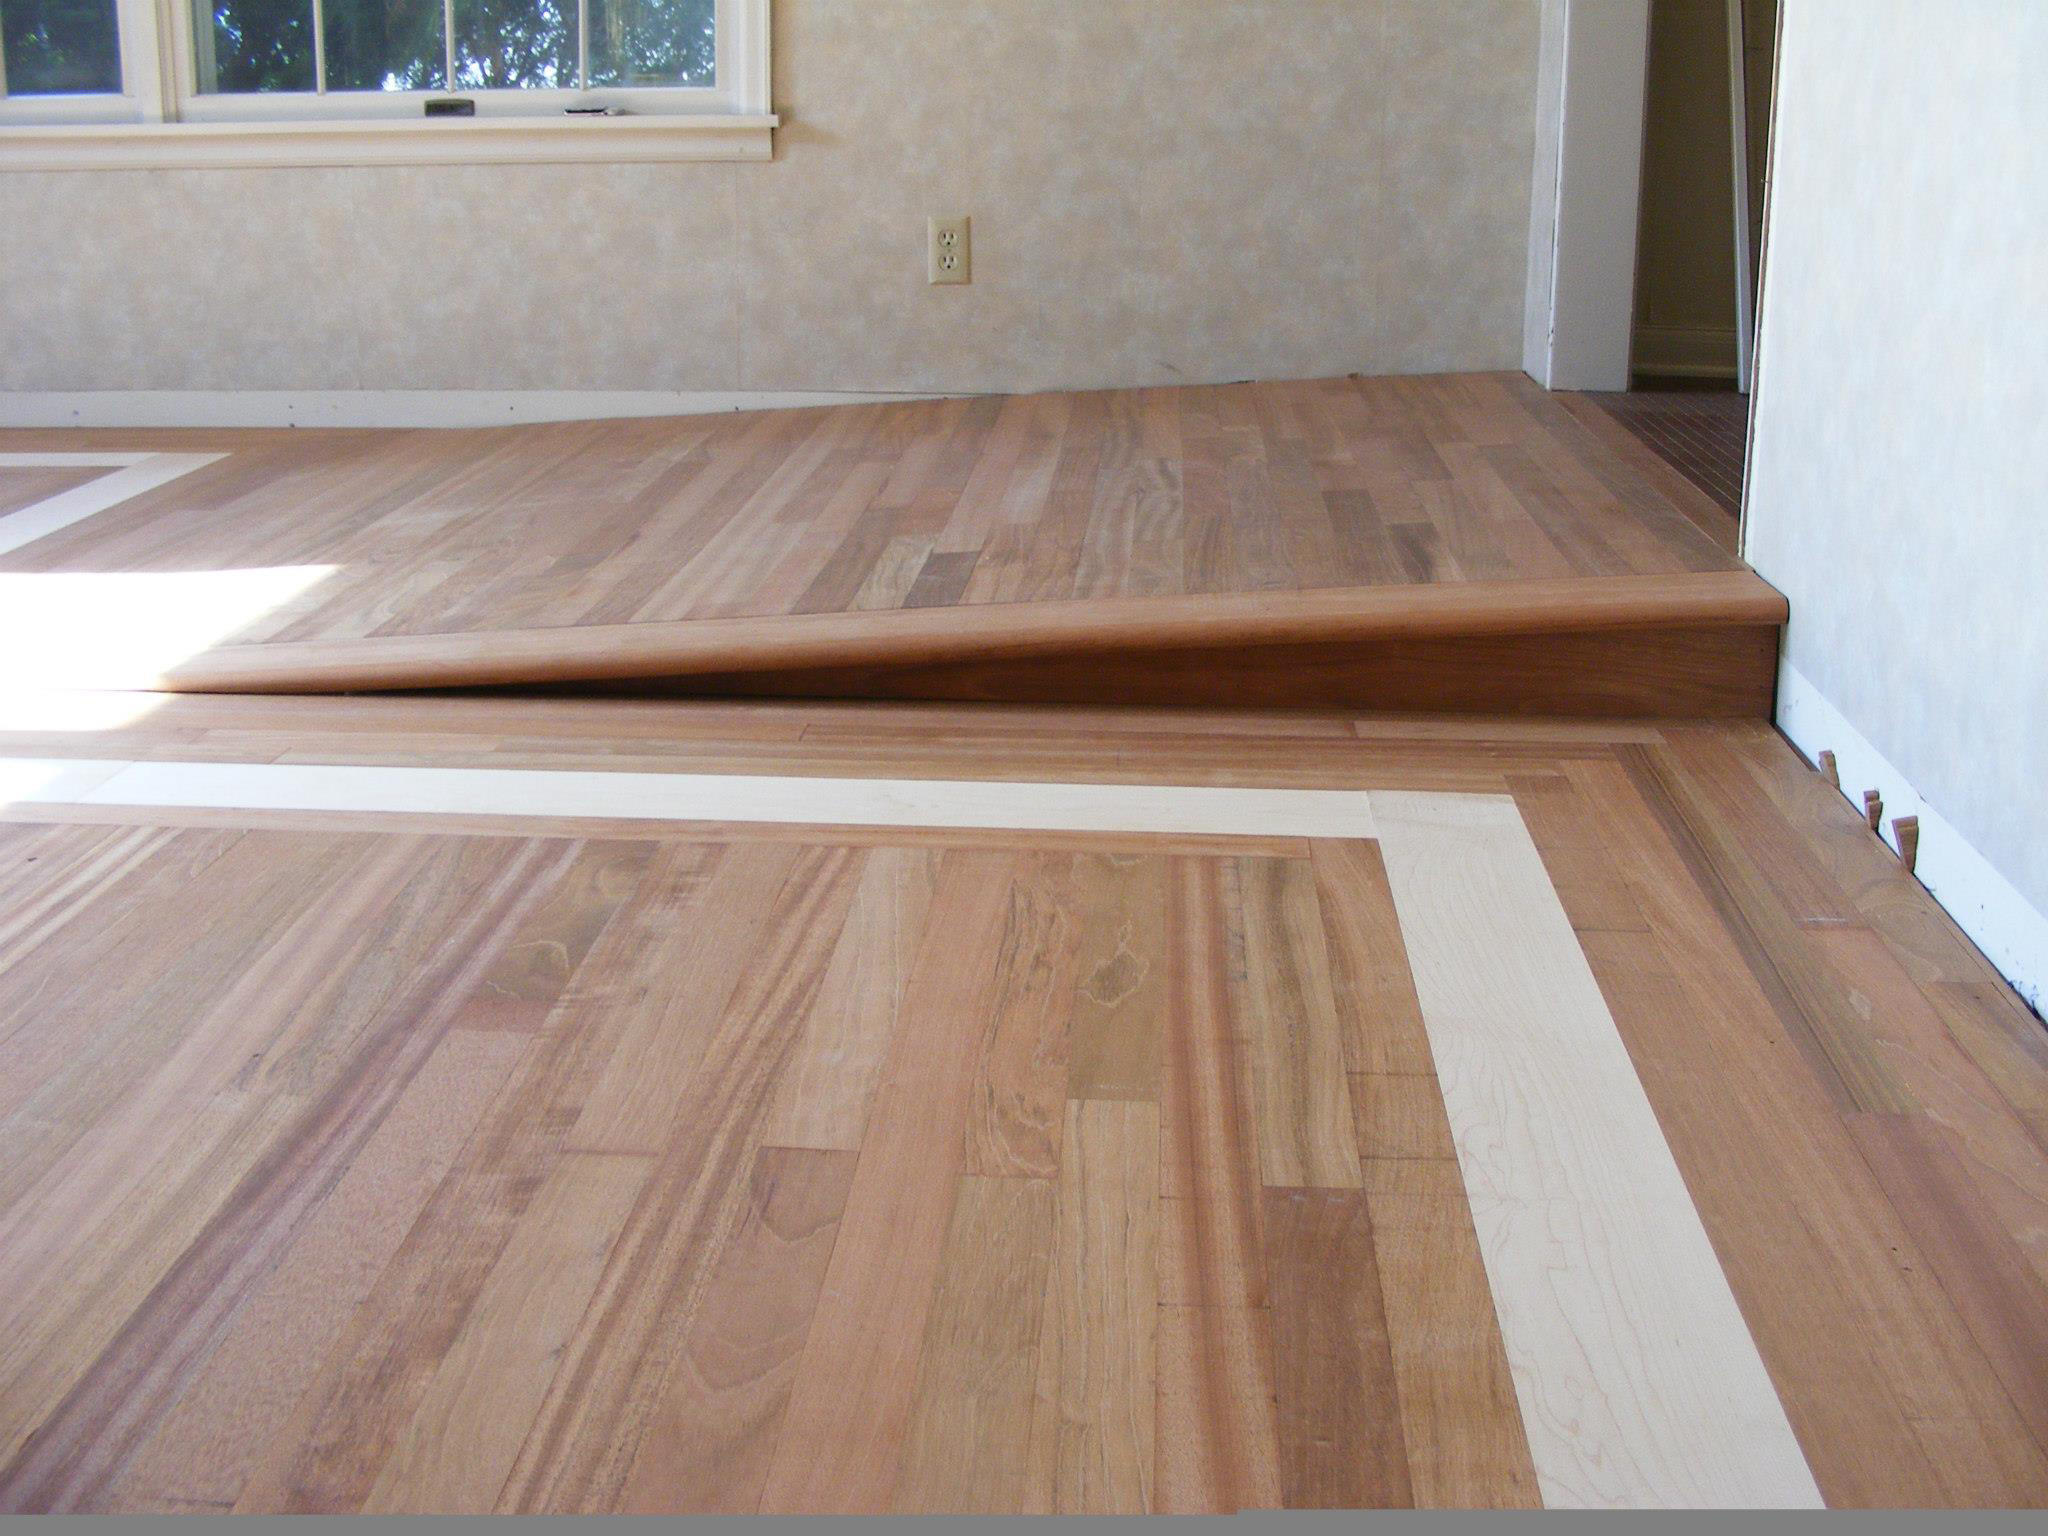 Precision Hardwood Floors image 6